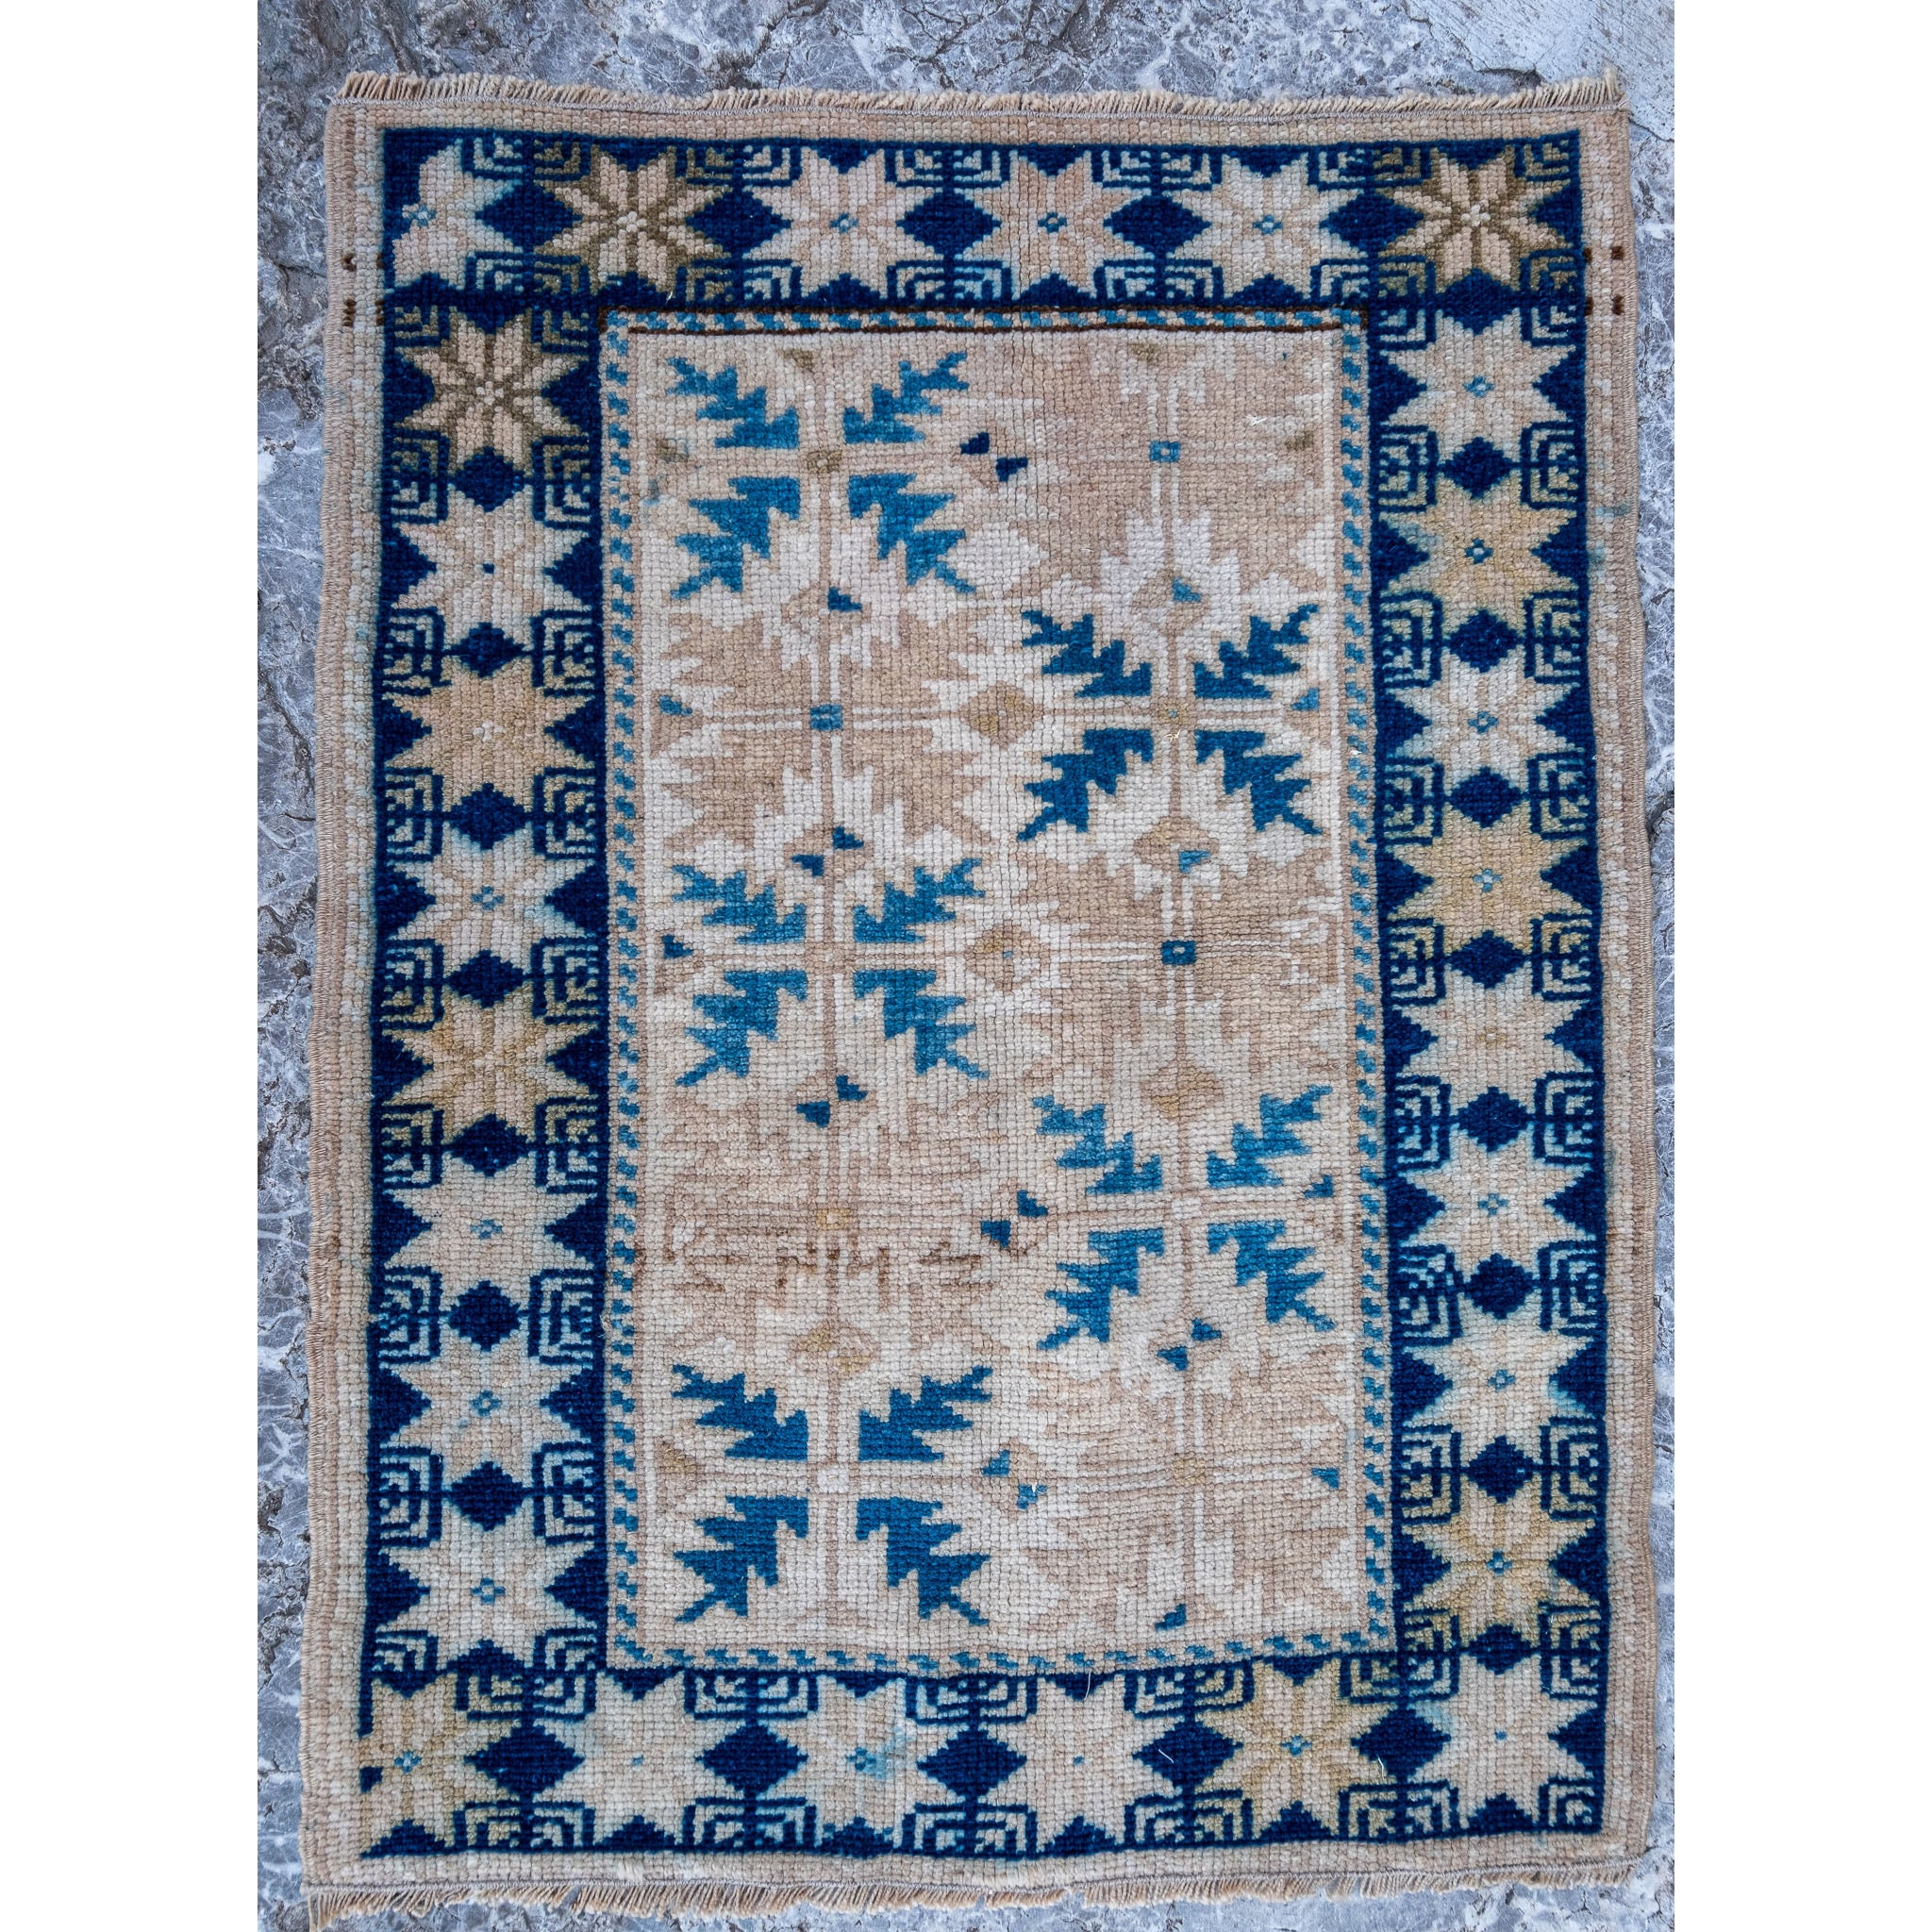 ON HOLD NOT AVAILABLE FOR PURCHASE 2860 Handwoven Vintage Rug 2'1x2'9